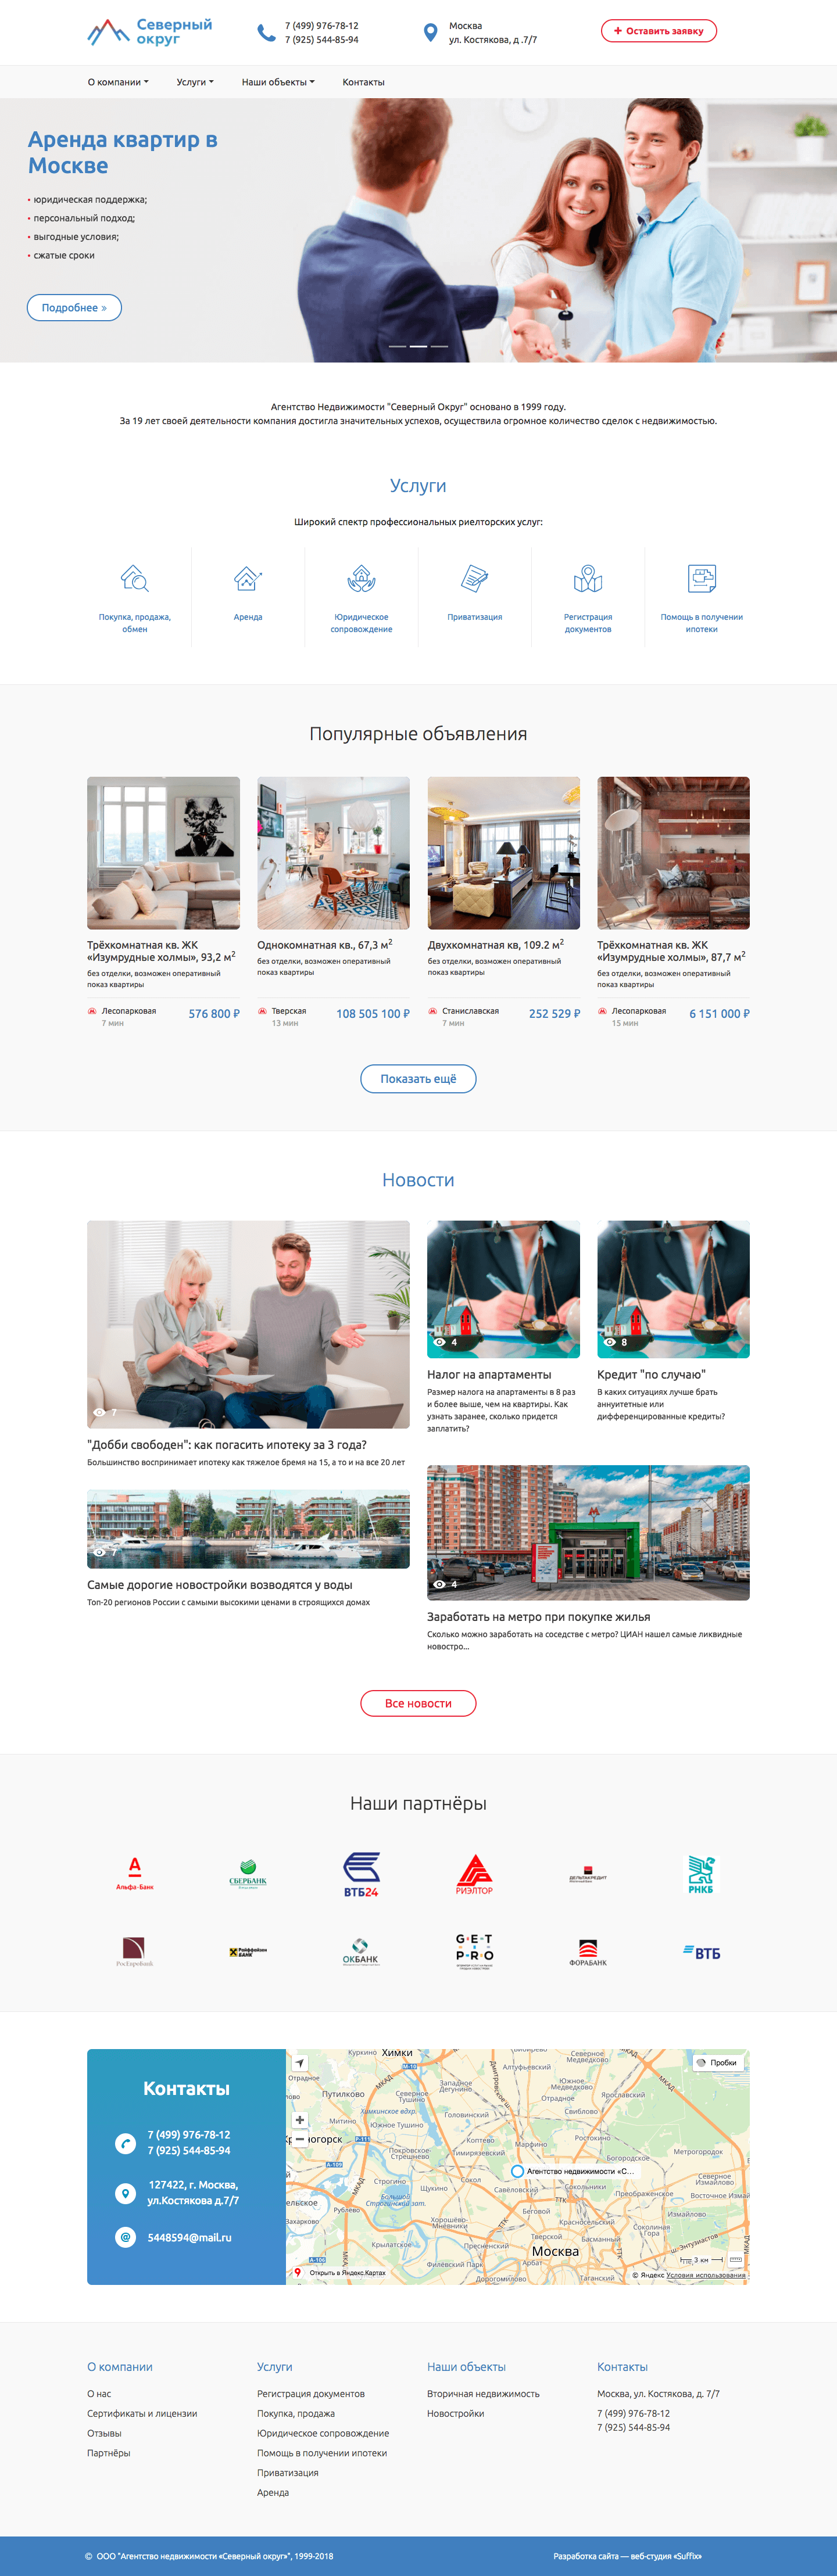 Real estate agency «Severniy Okrug»